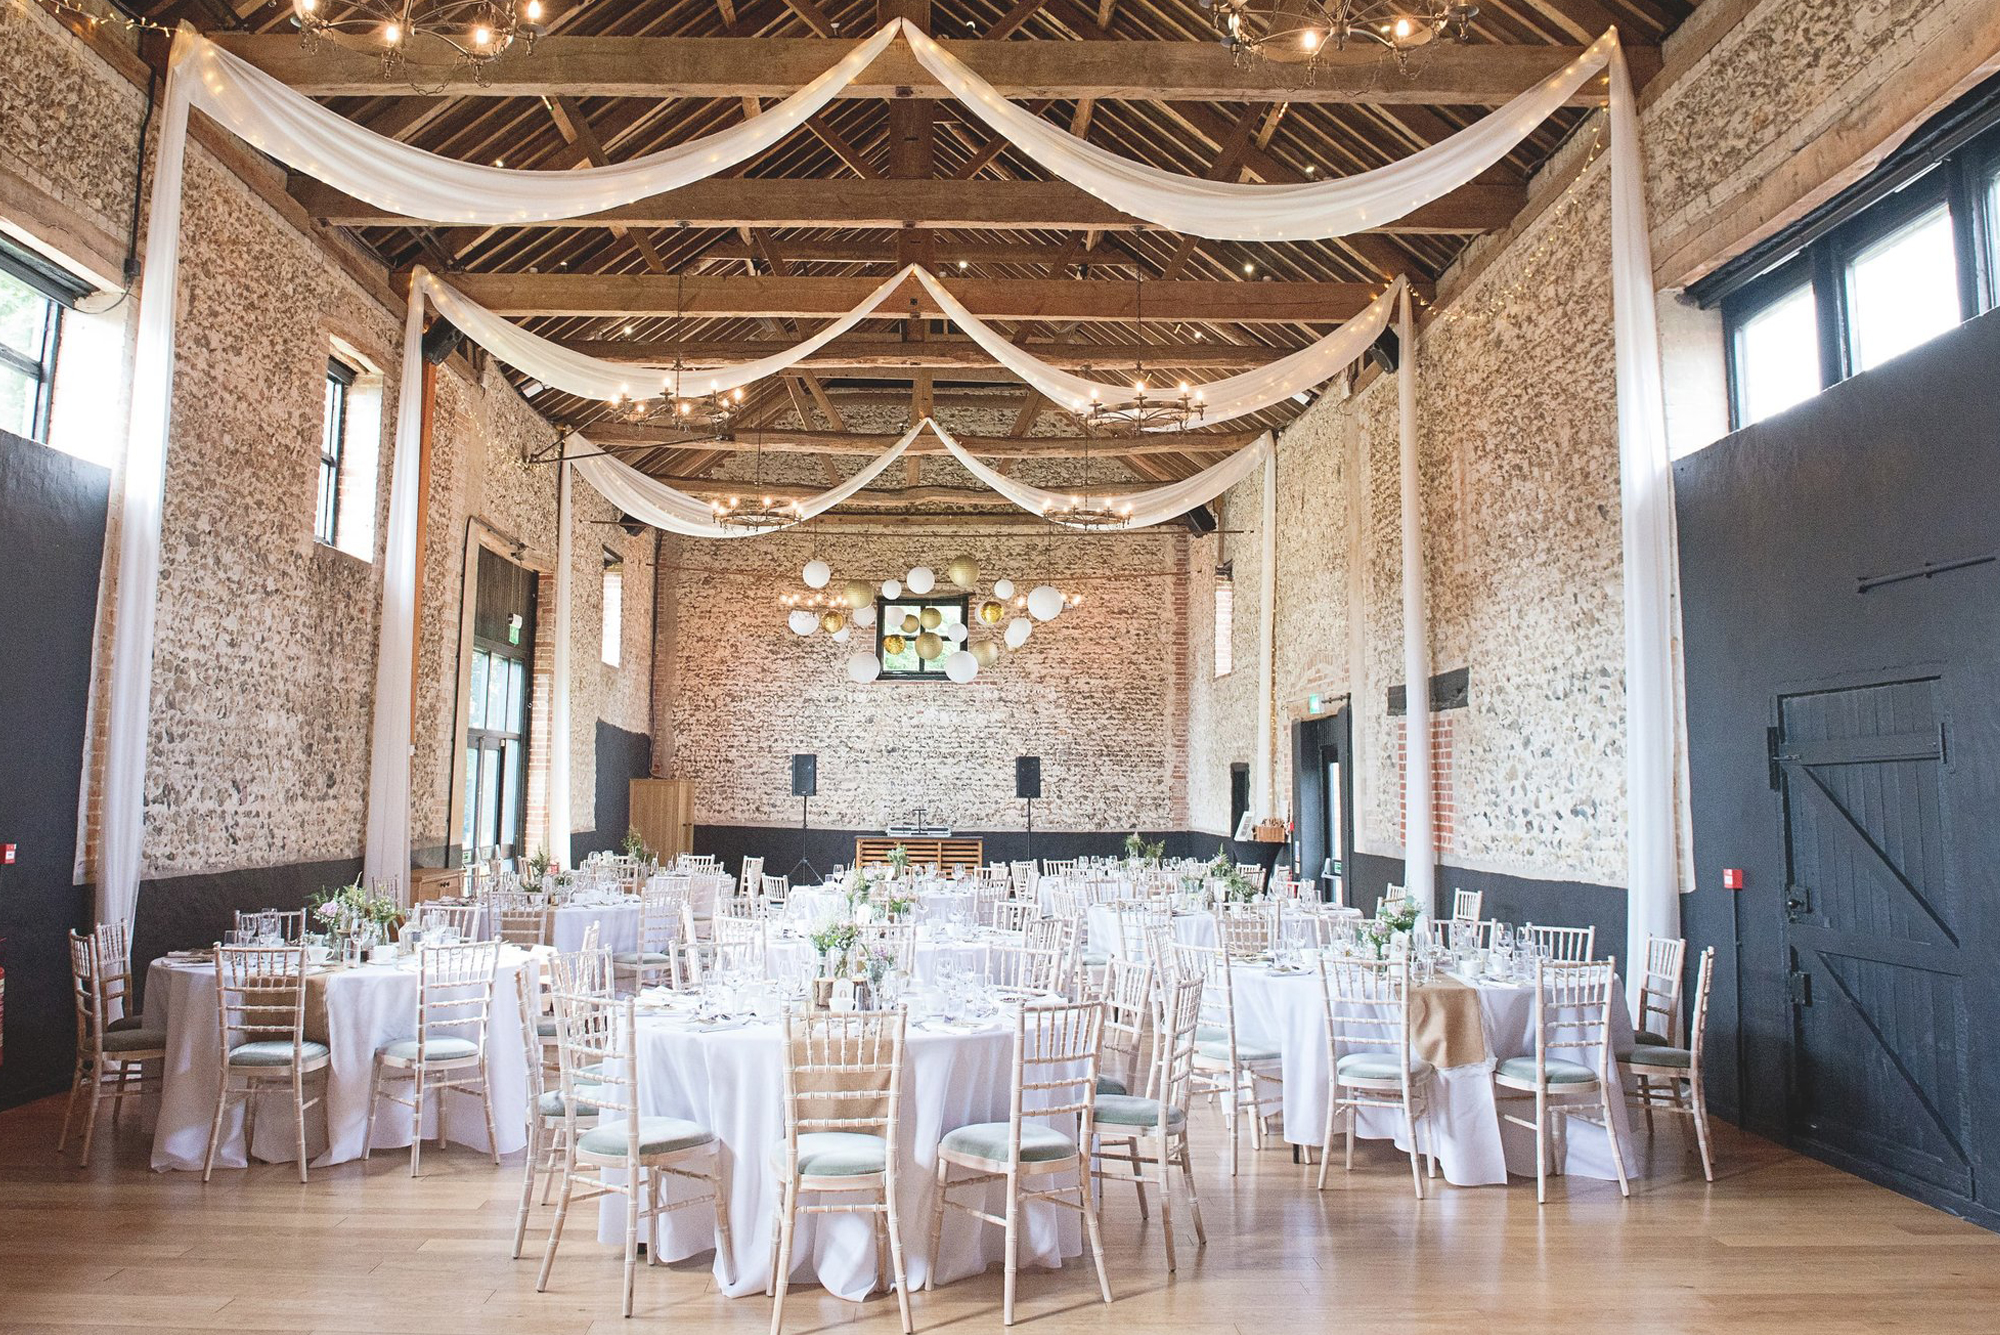 Cambridge Wedding Services - The Granary Estate